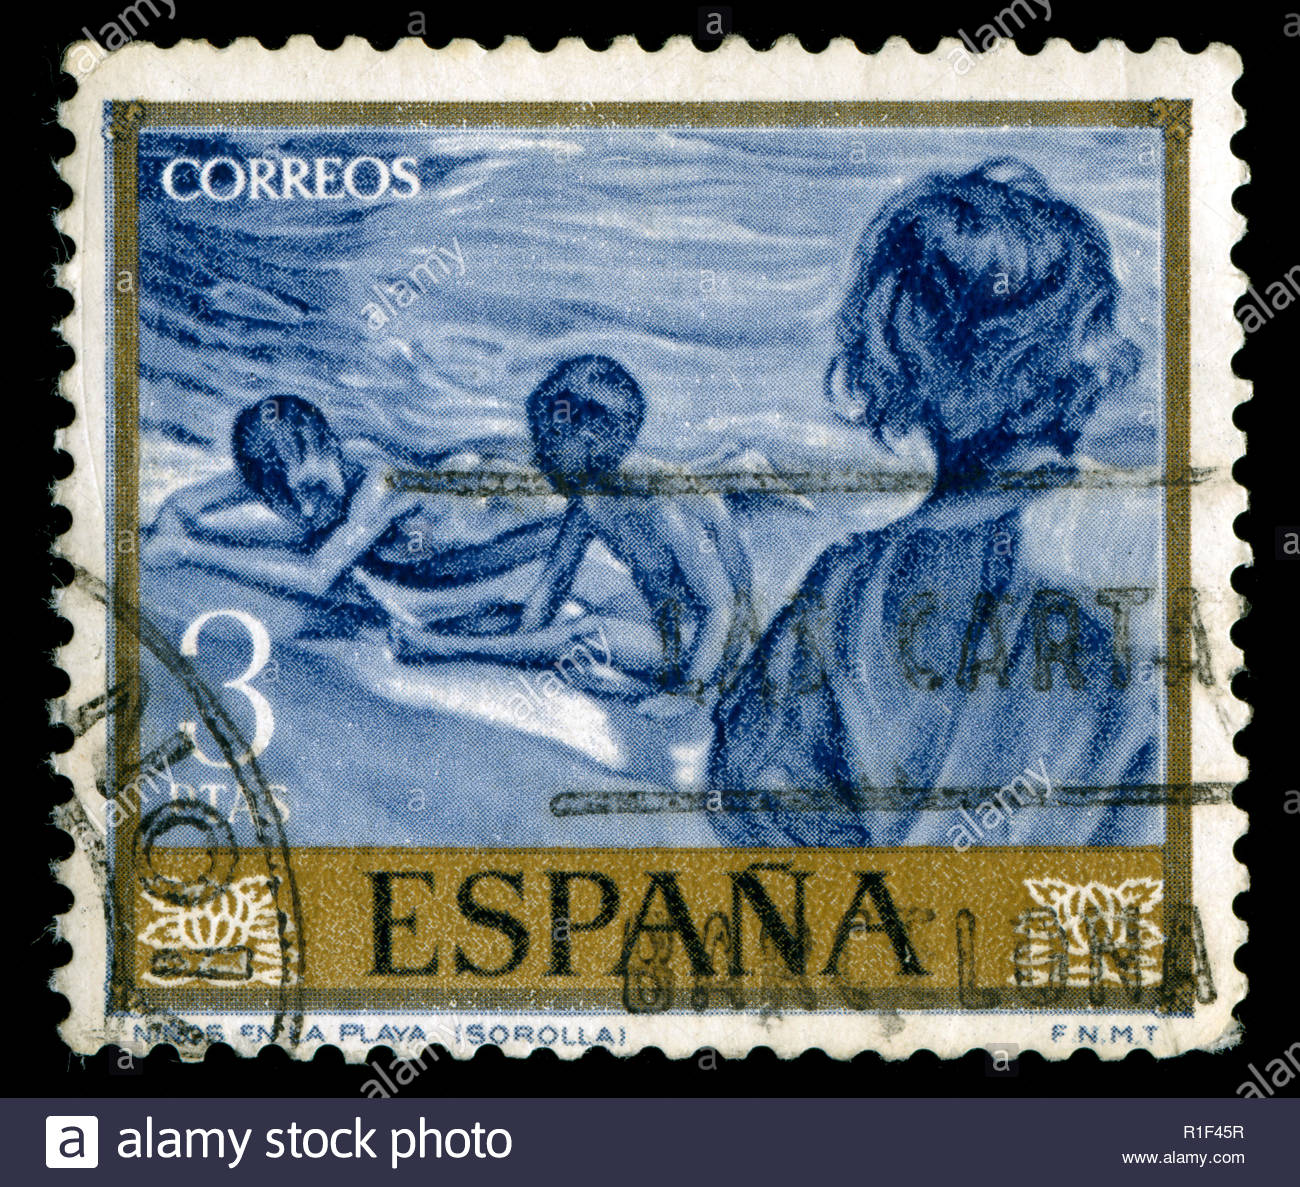 Postage Stamps From Spain In The Painters Sorolla Series Issued 1964